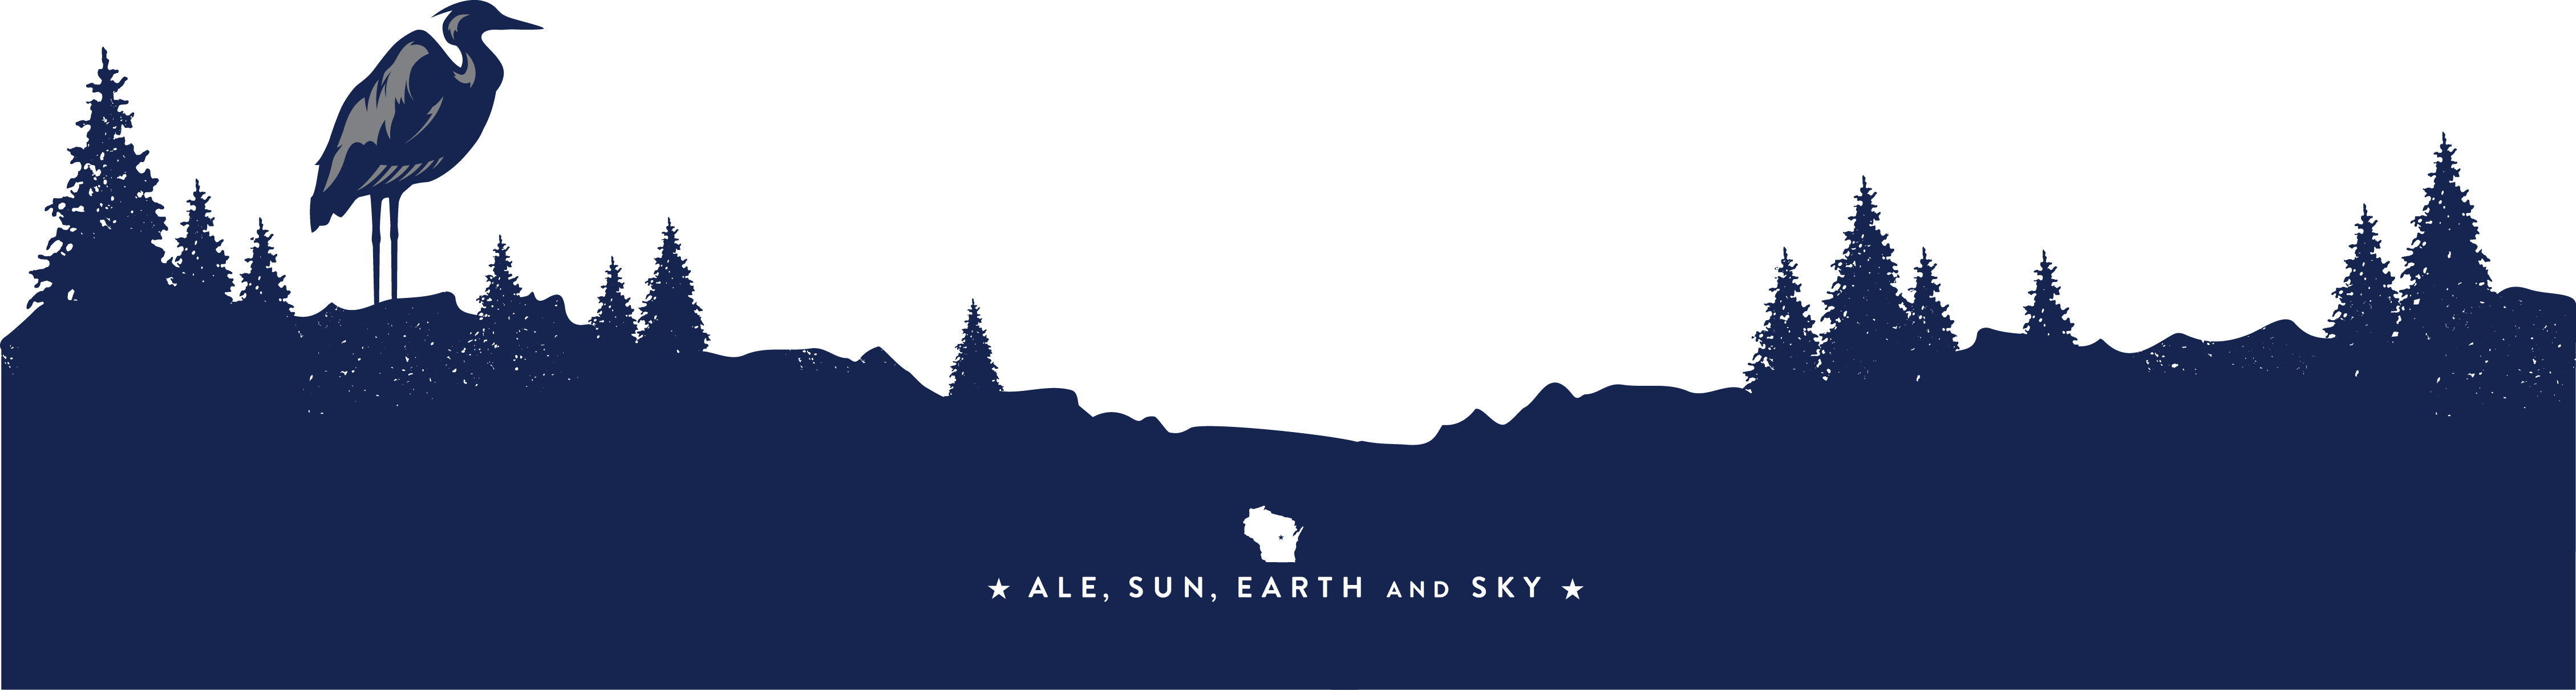 Ale Sun Earth and Sky